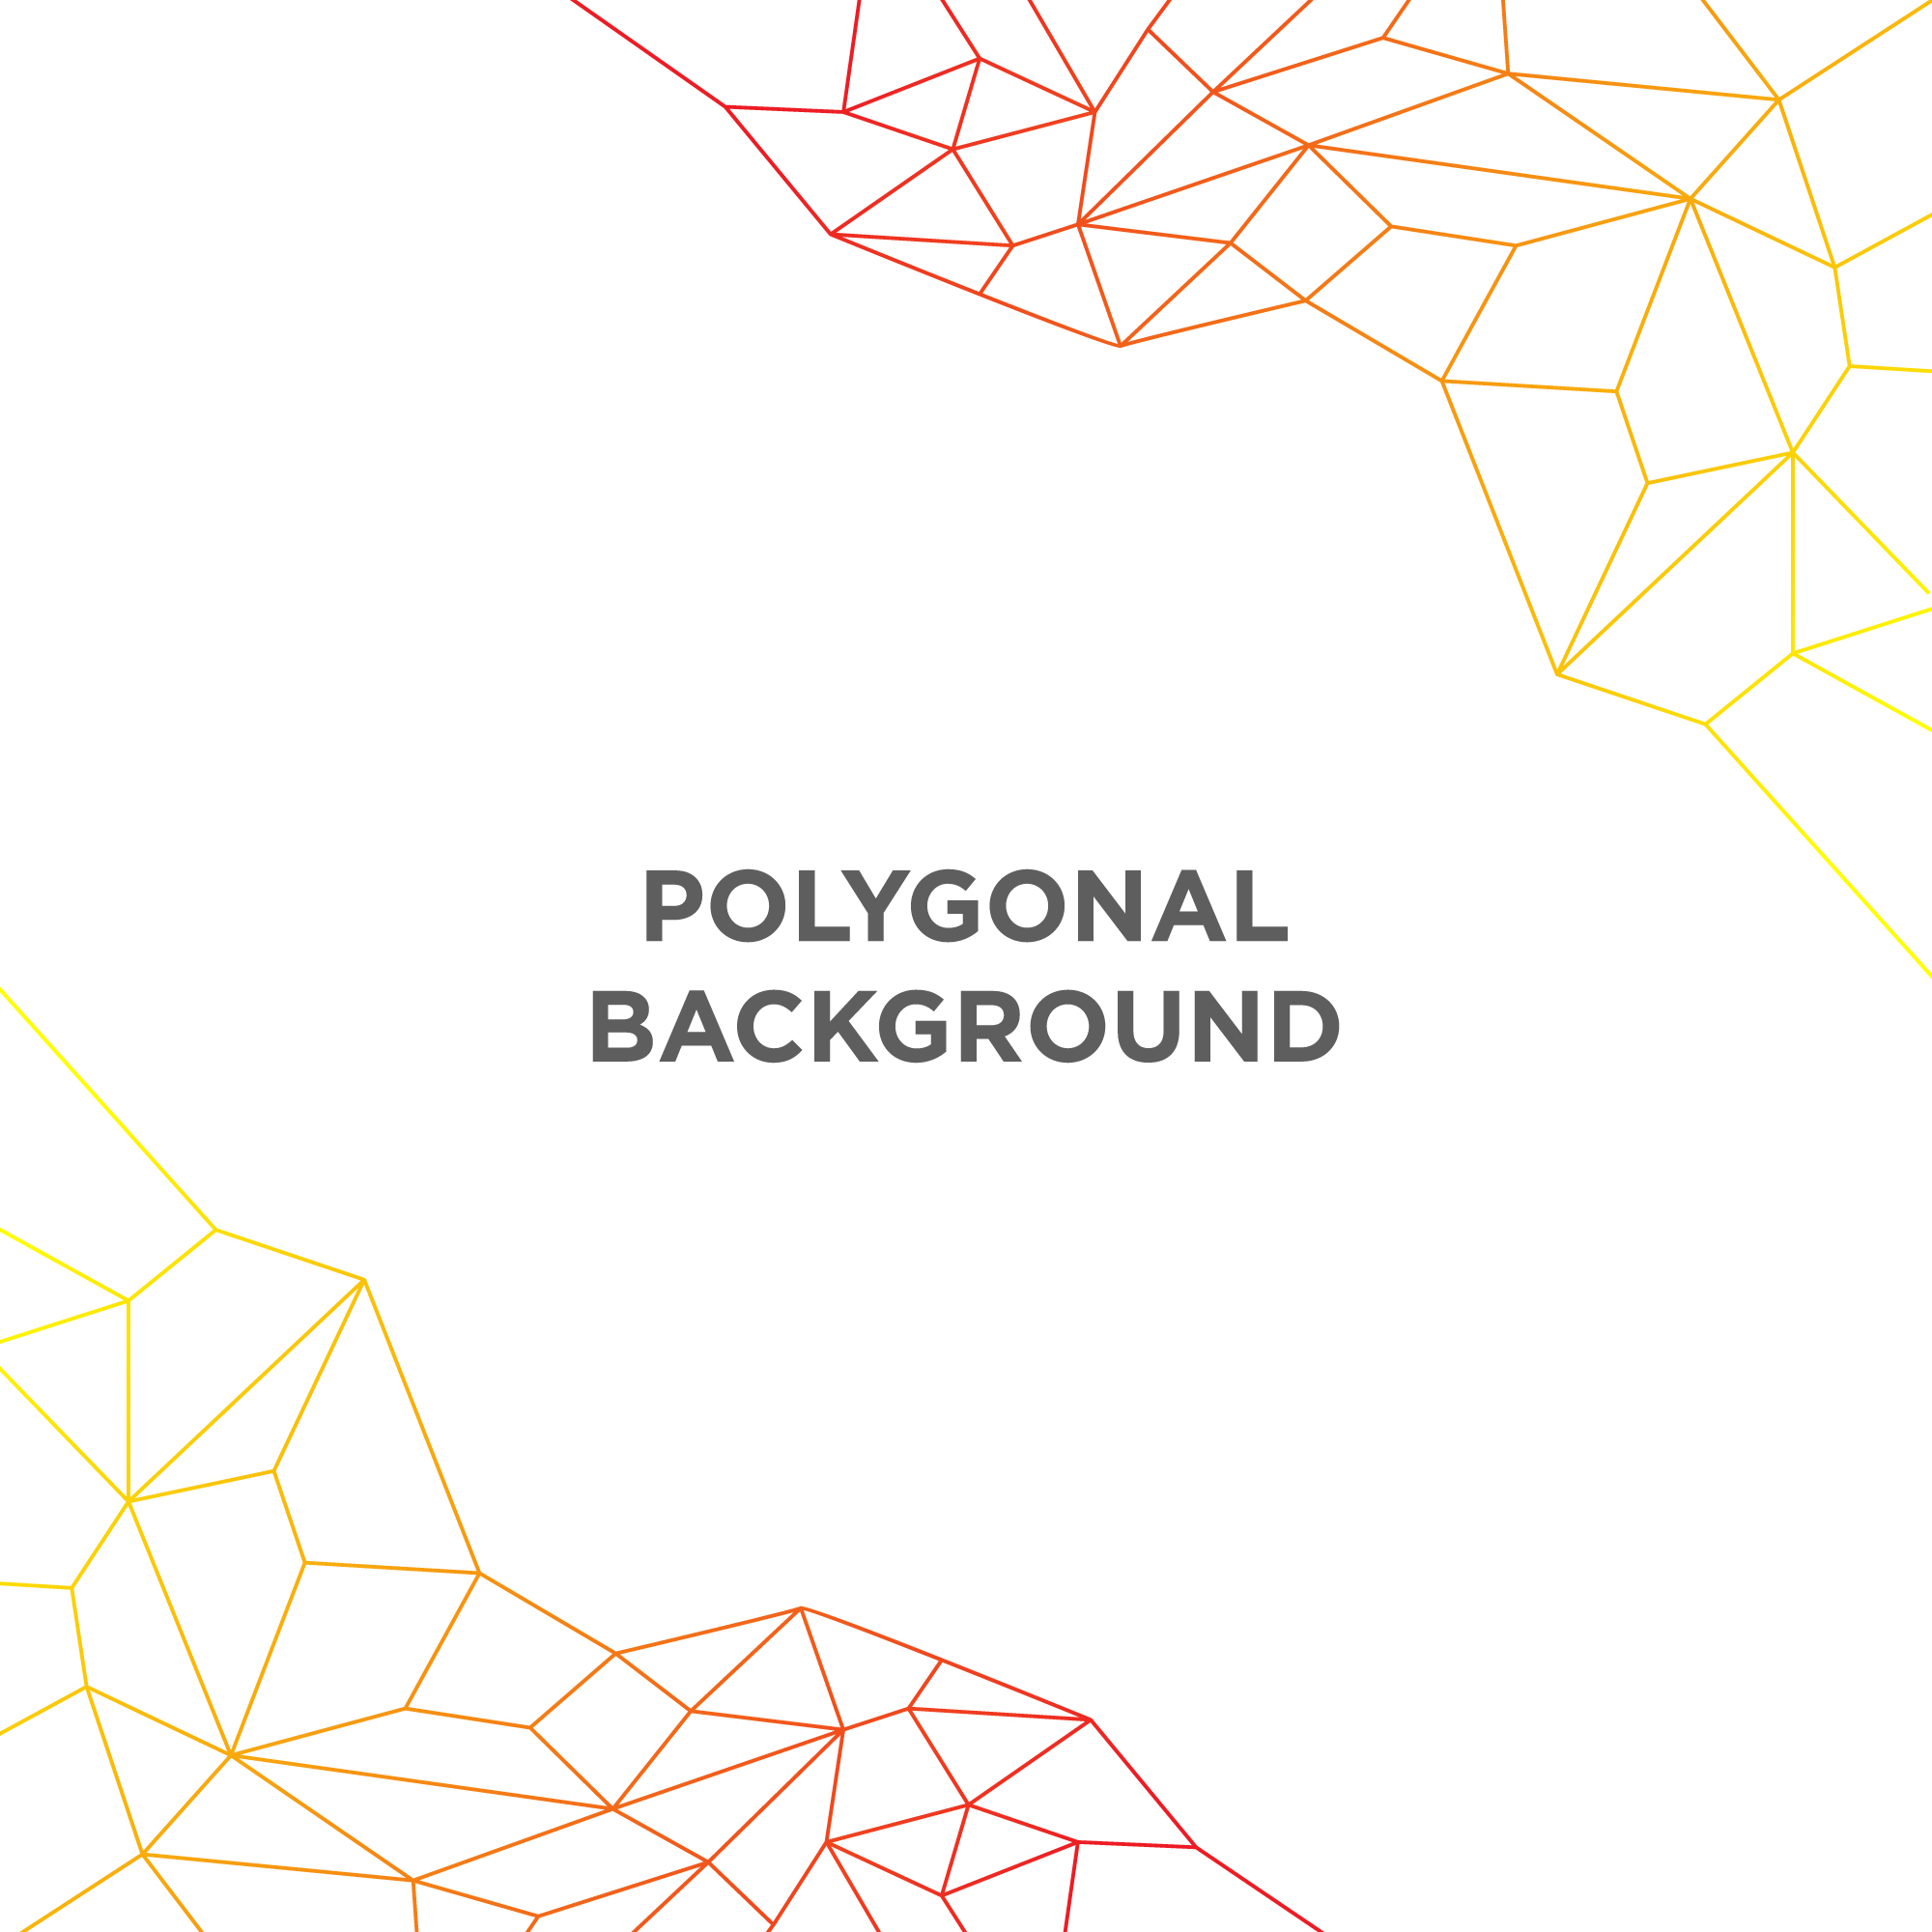 Simple polygonal background